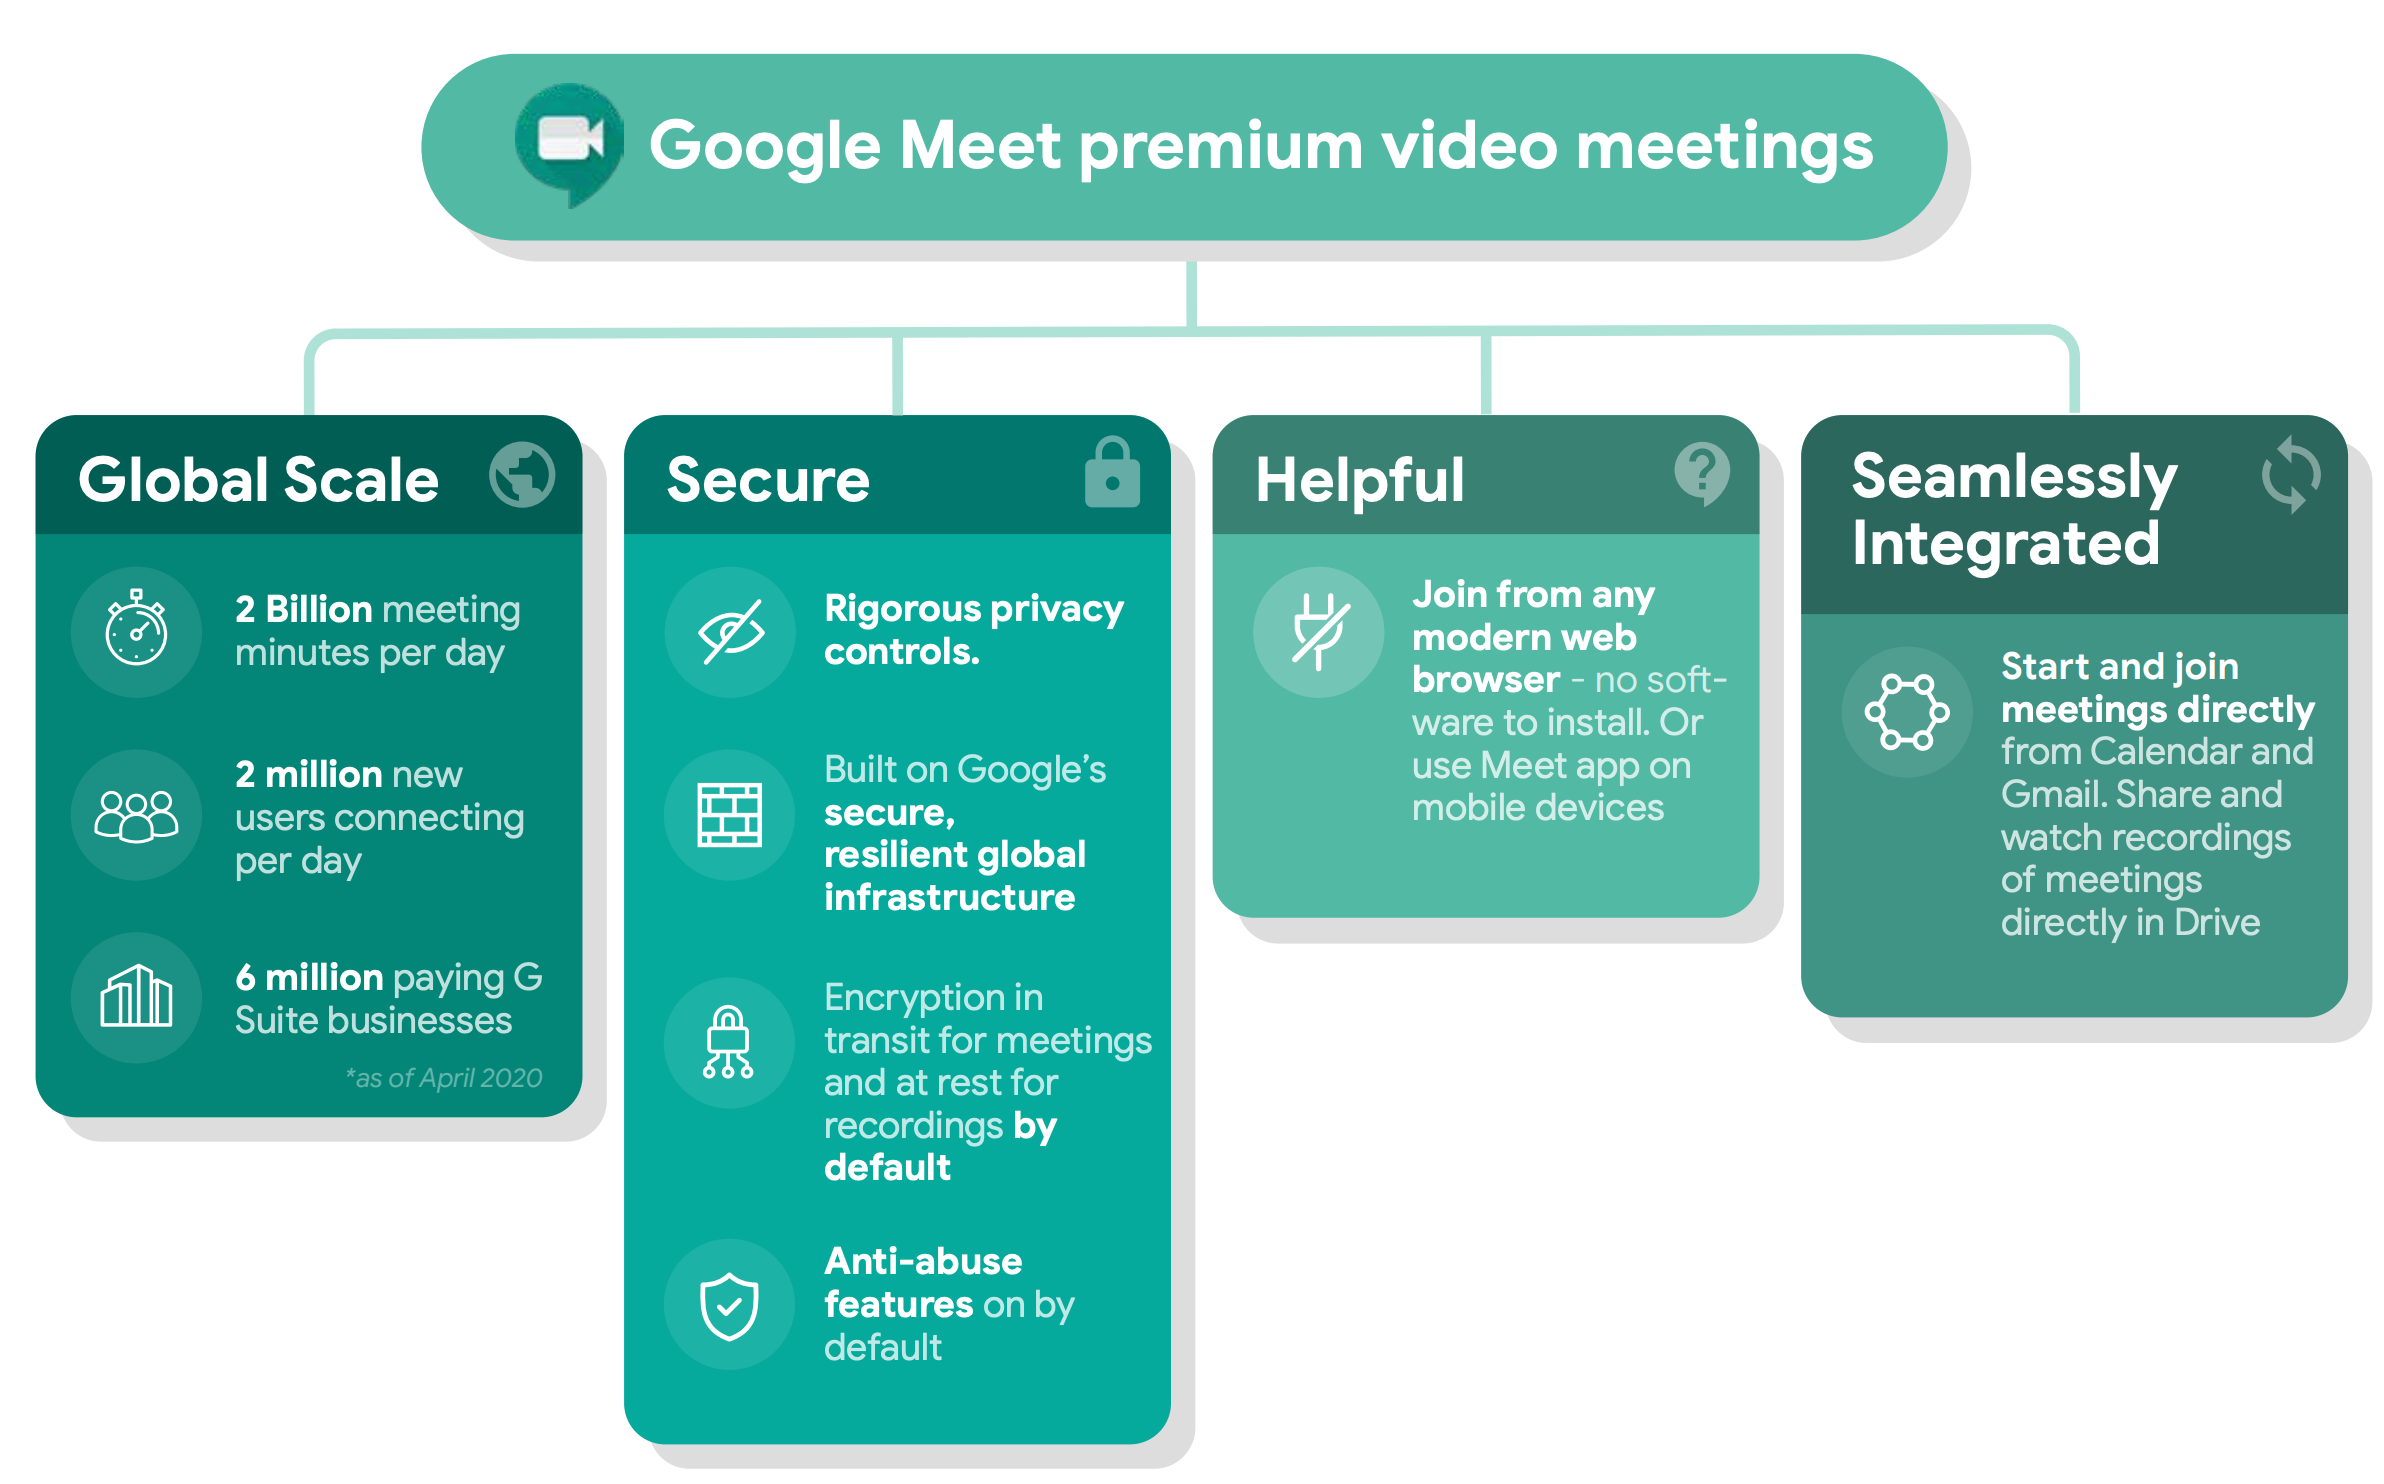 Google Meet premium video meetings visual